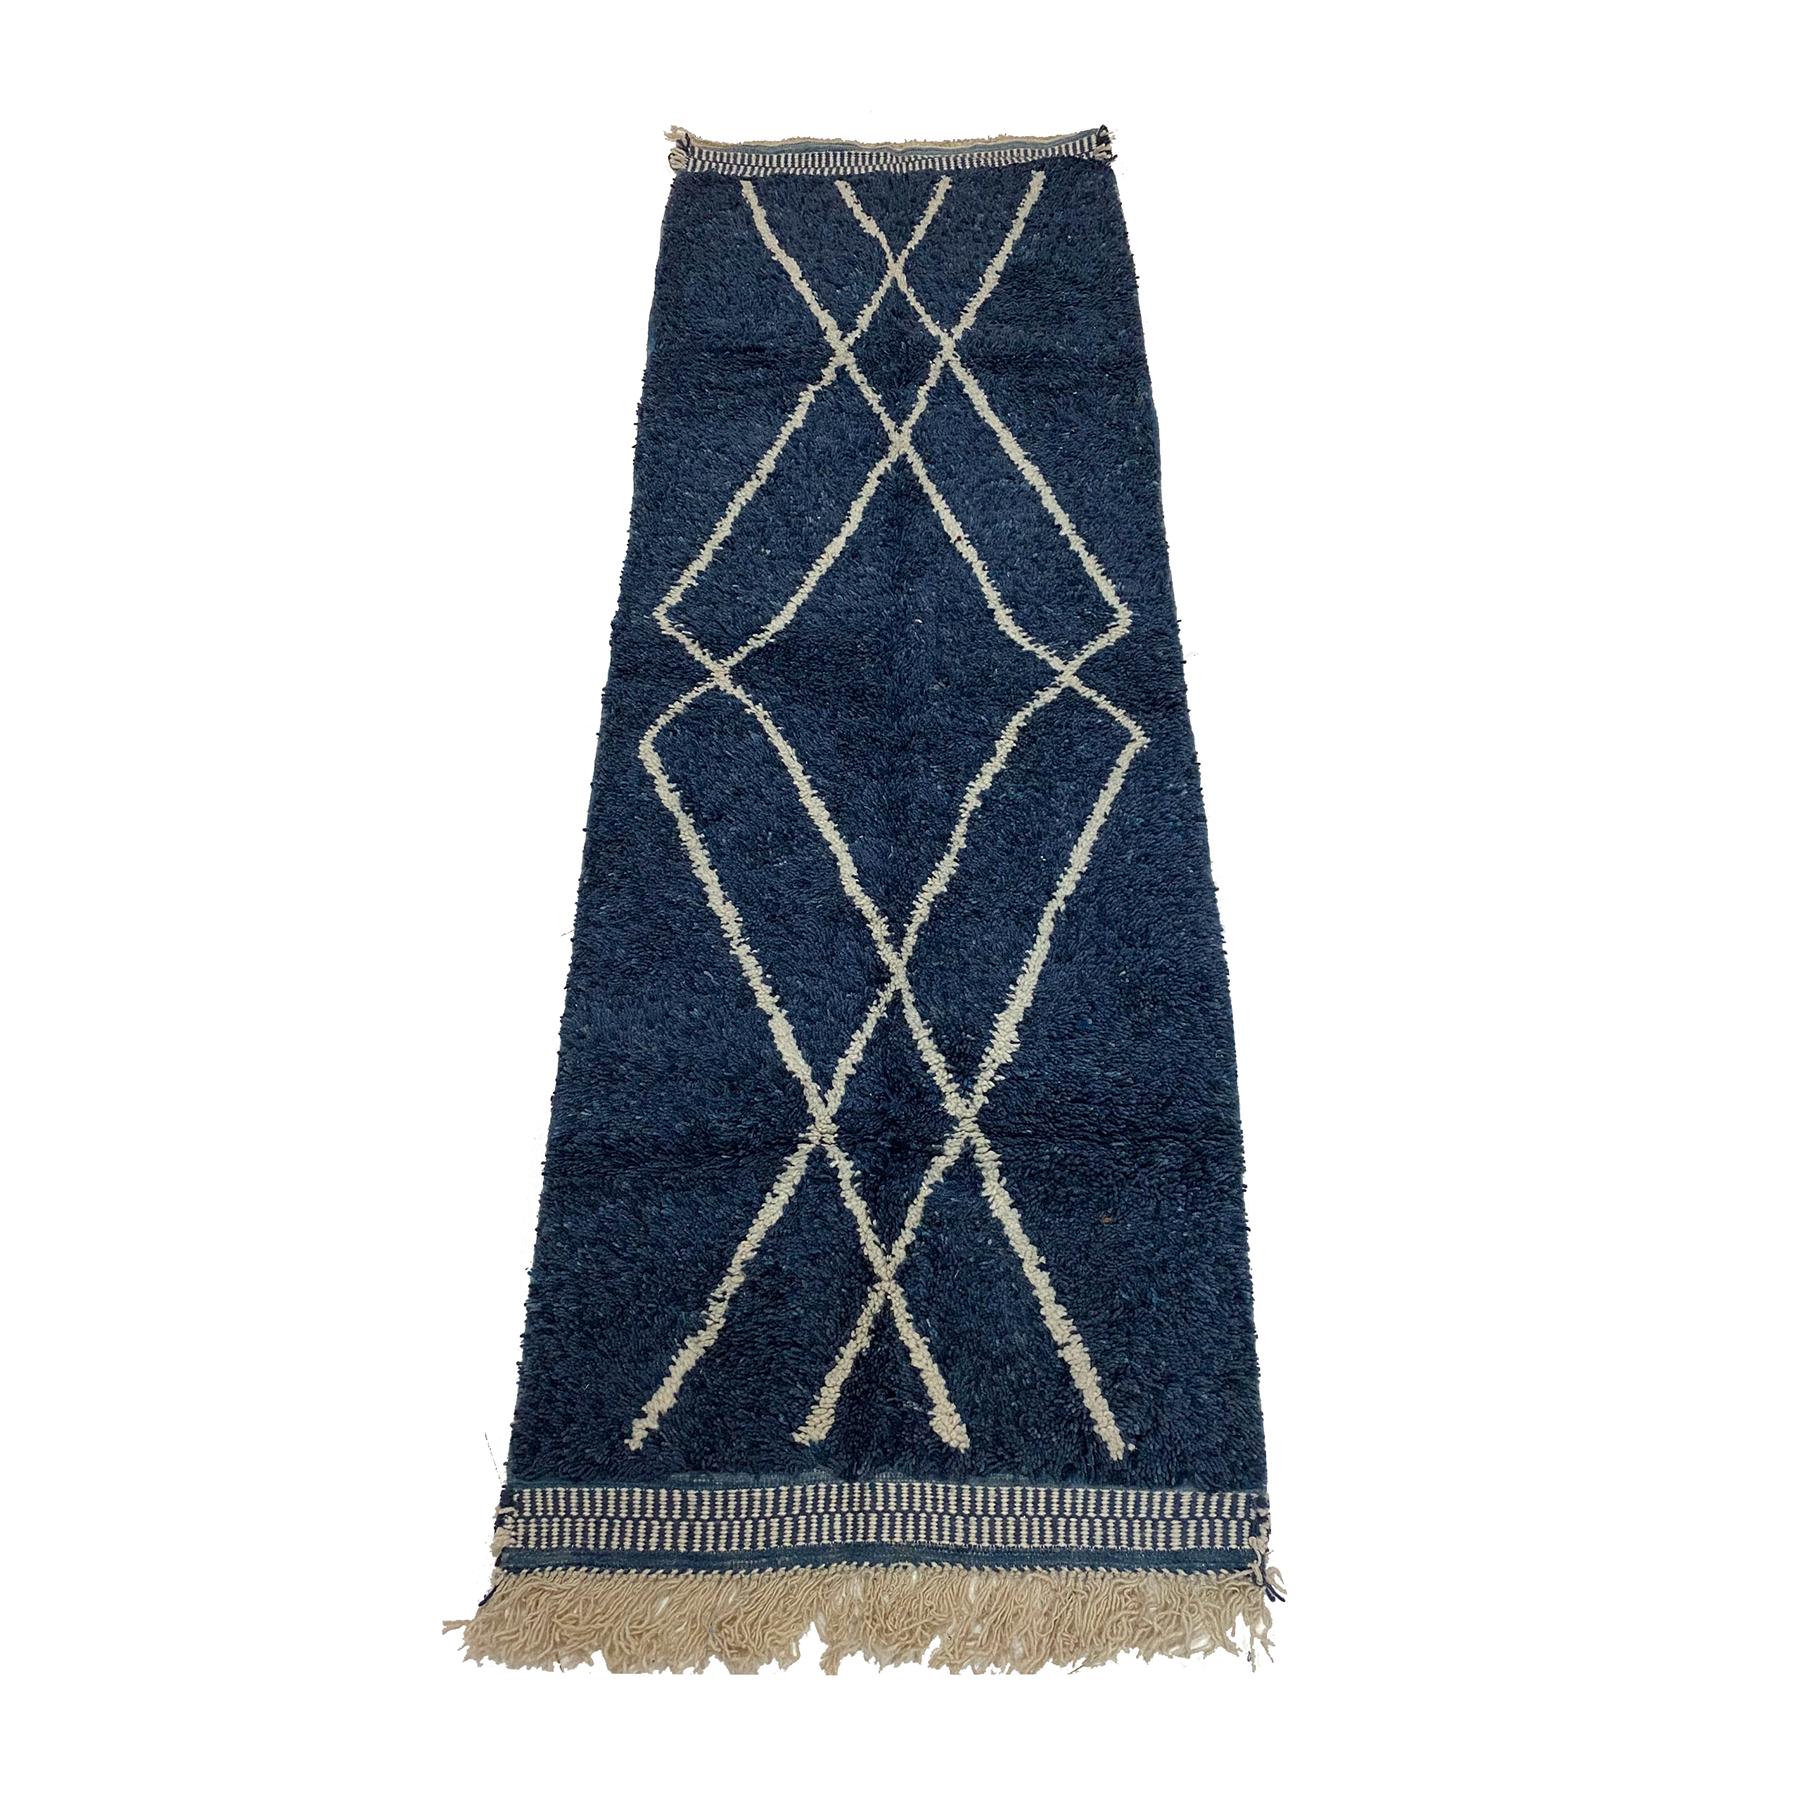 Navy blue Beni Ourain style Moroccan runner rug